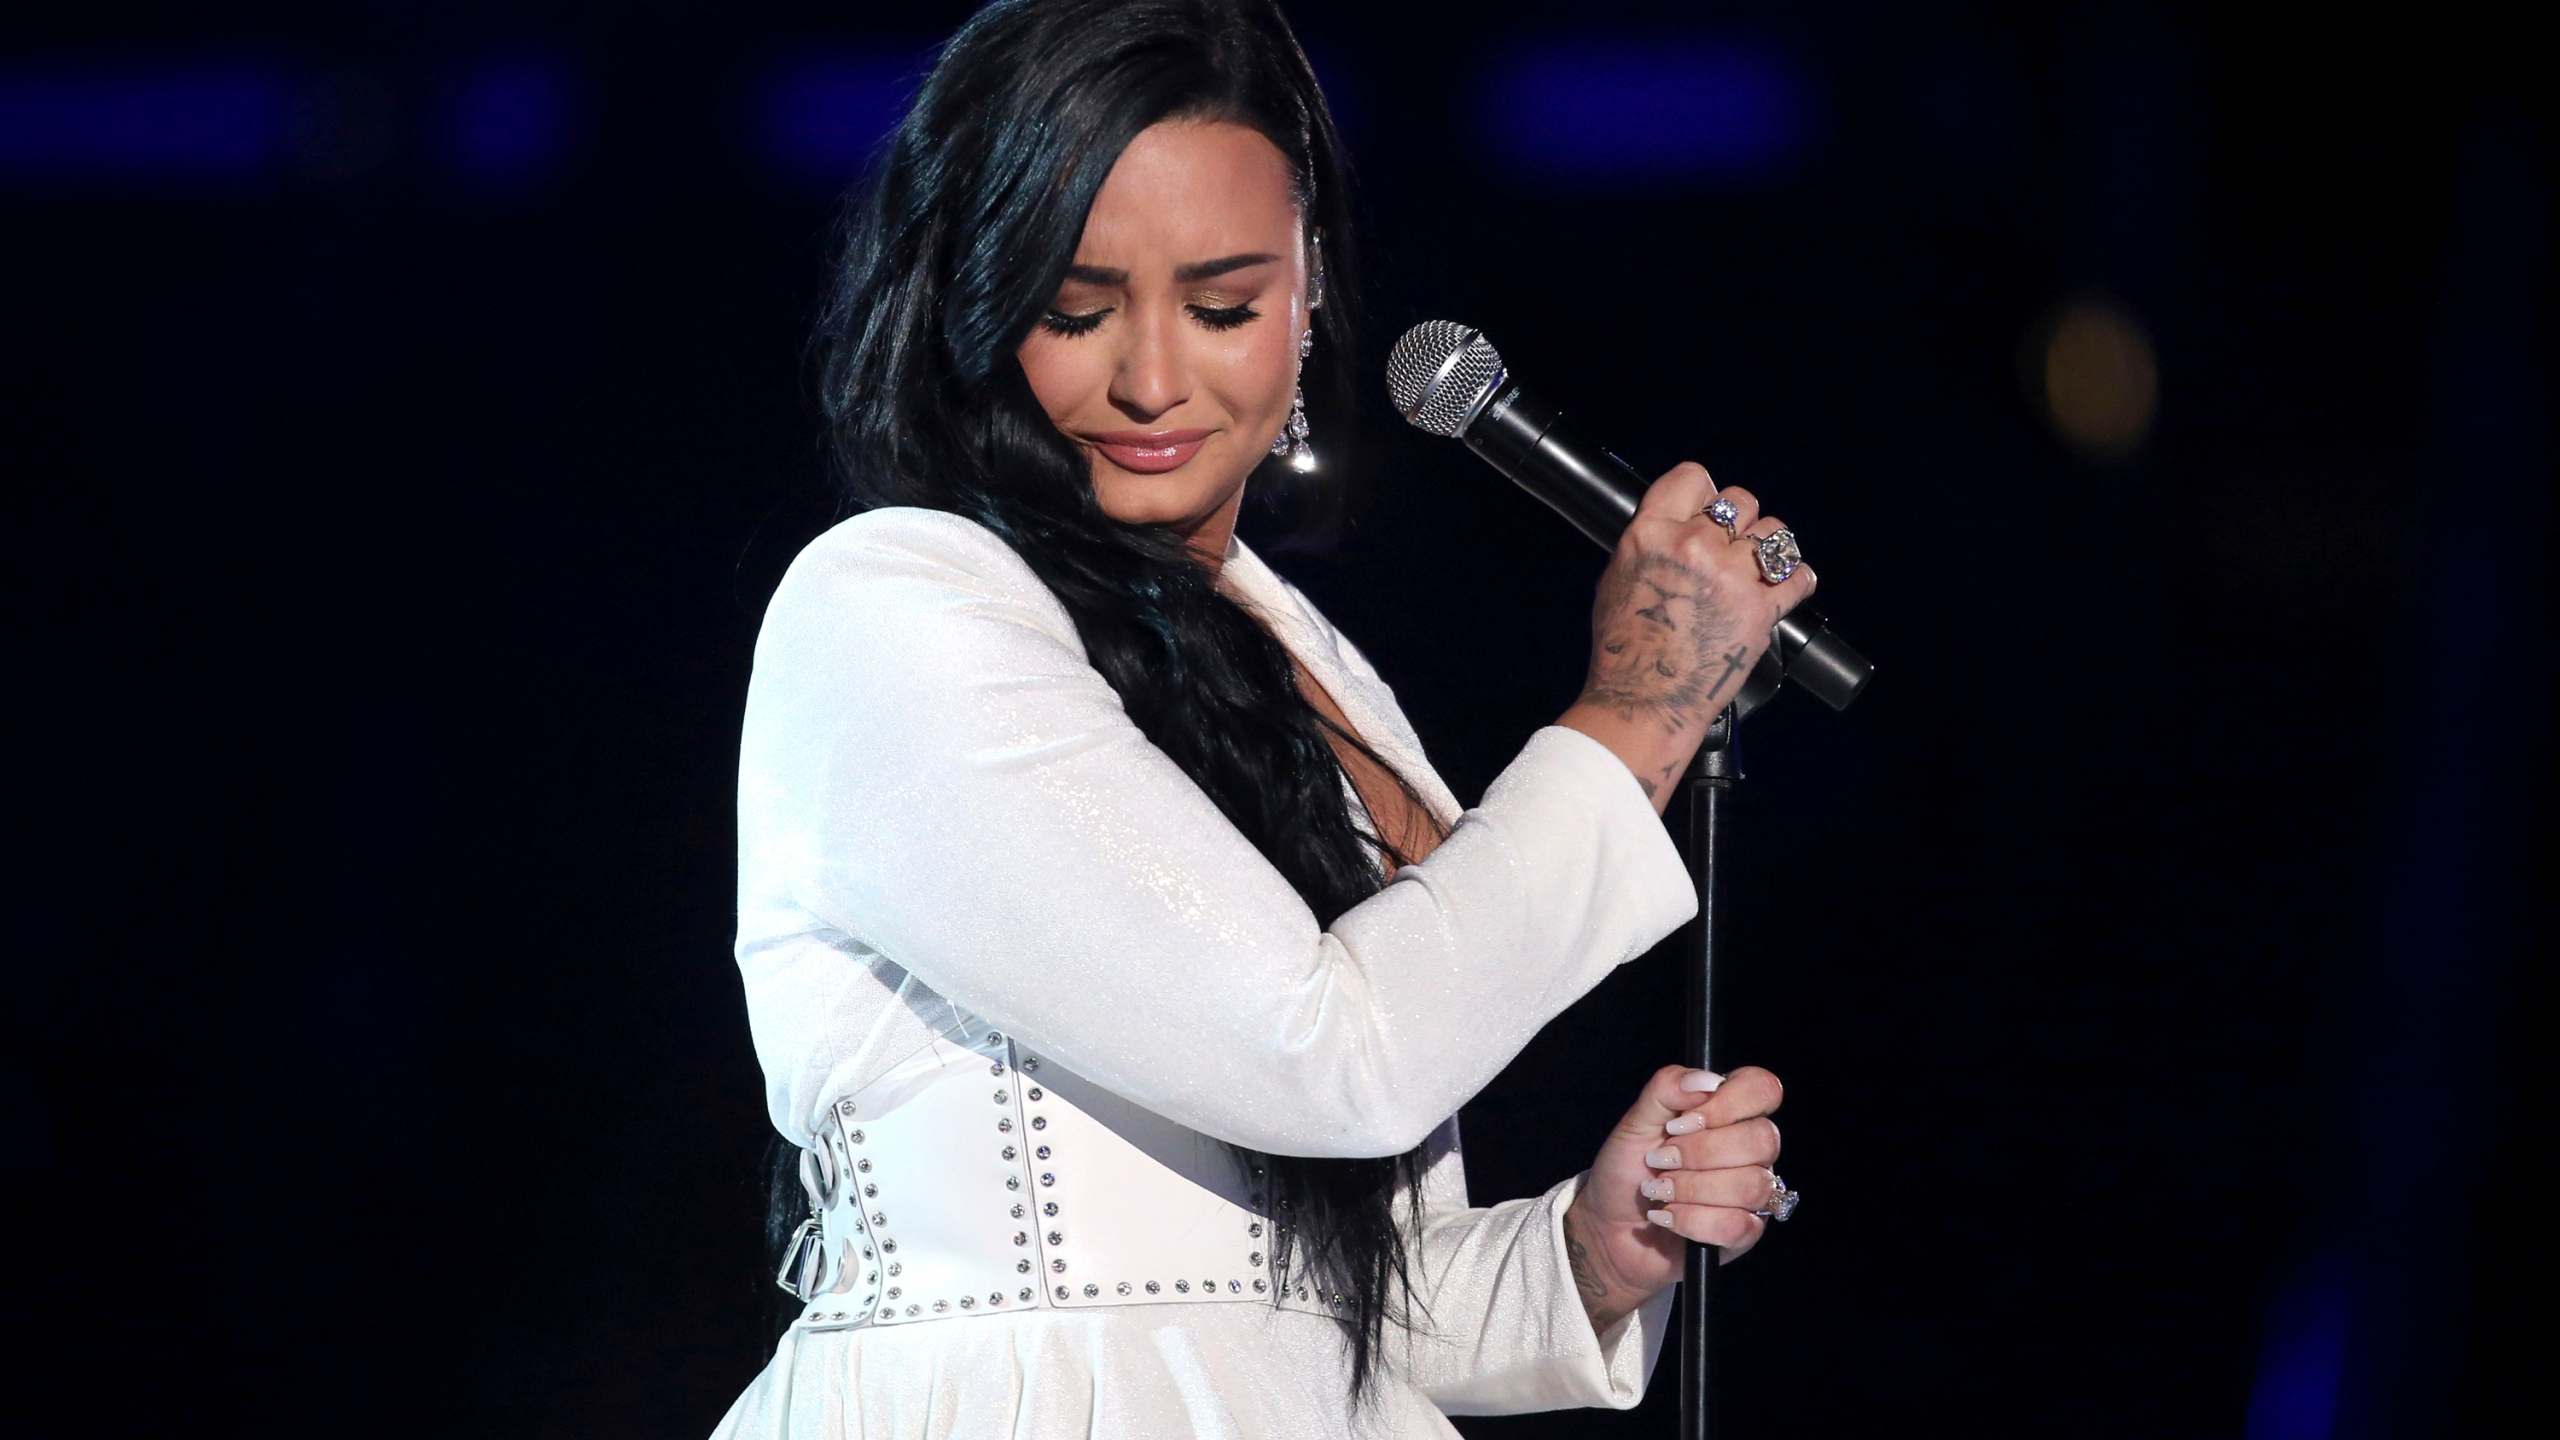 """Demi Lovato performs """"Anyone"""" at the 62nd annual Grammy Awards on Jan. 26, 2020, in Los Angeles. Lovato revealed on May 19, 2021 they identify as nonbinary and are changing their pronouns, telling fans the decision came after """"self-reflective work."""" (Matt Sayles/Invision/AP, File)"""